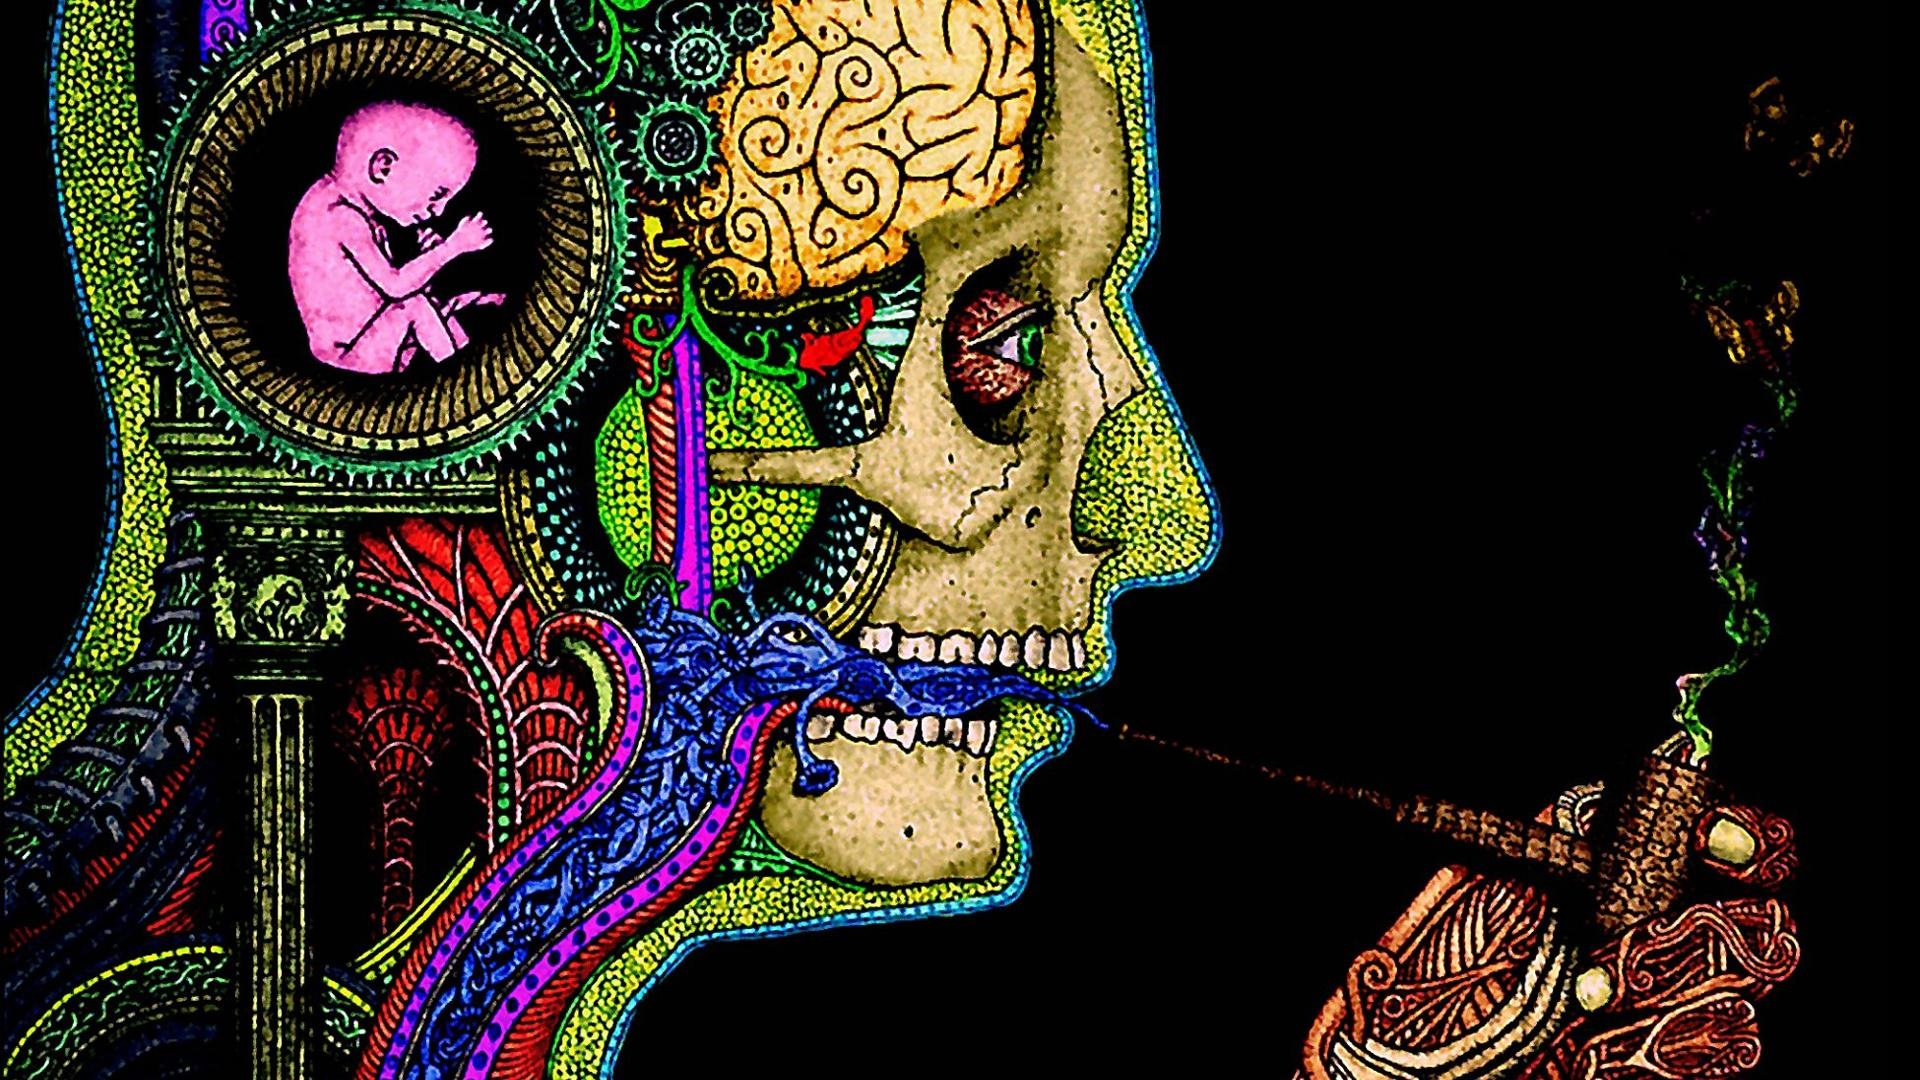 Psychodelic wallpaper